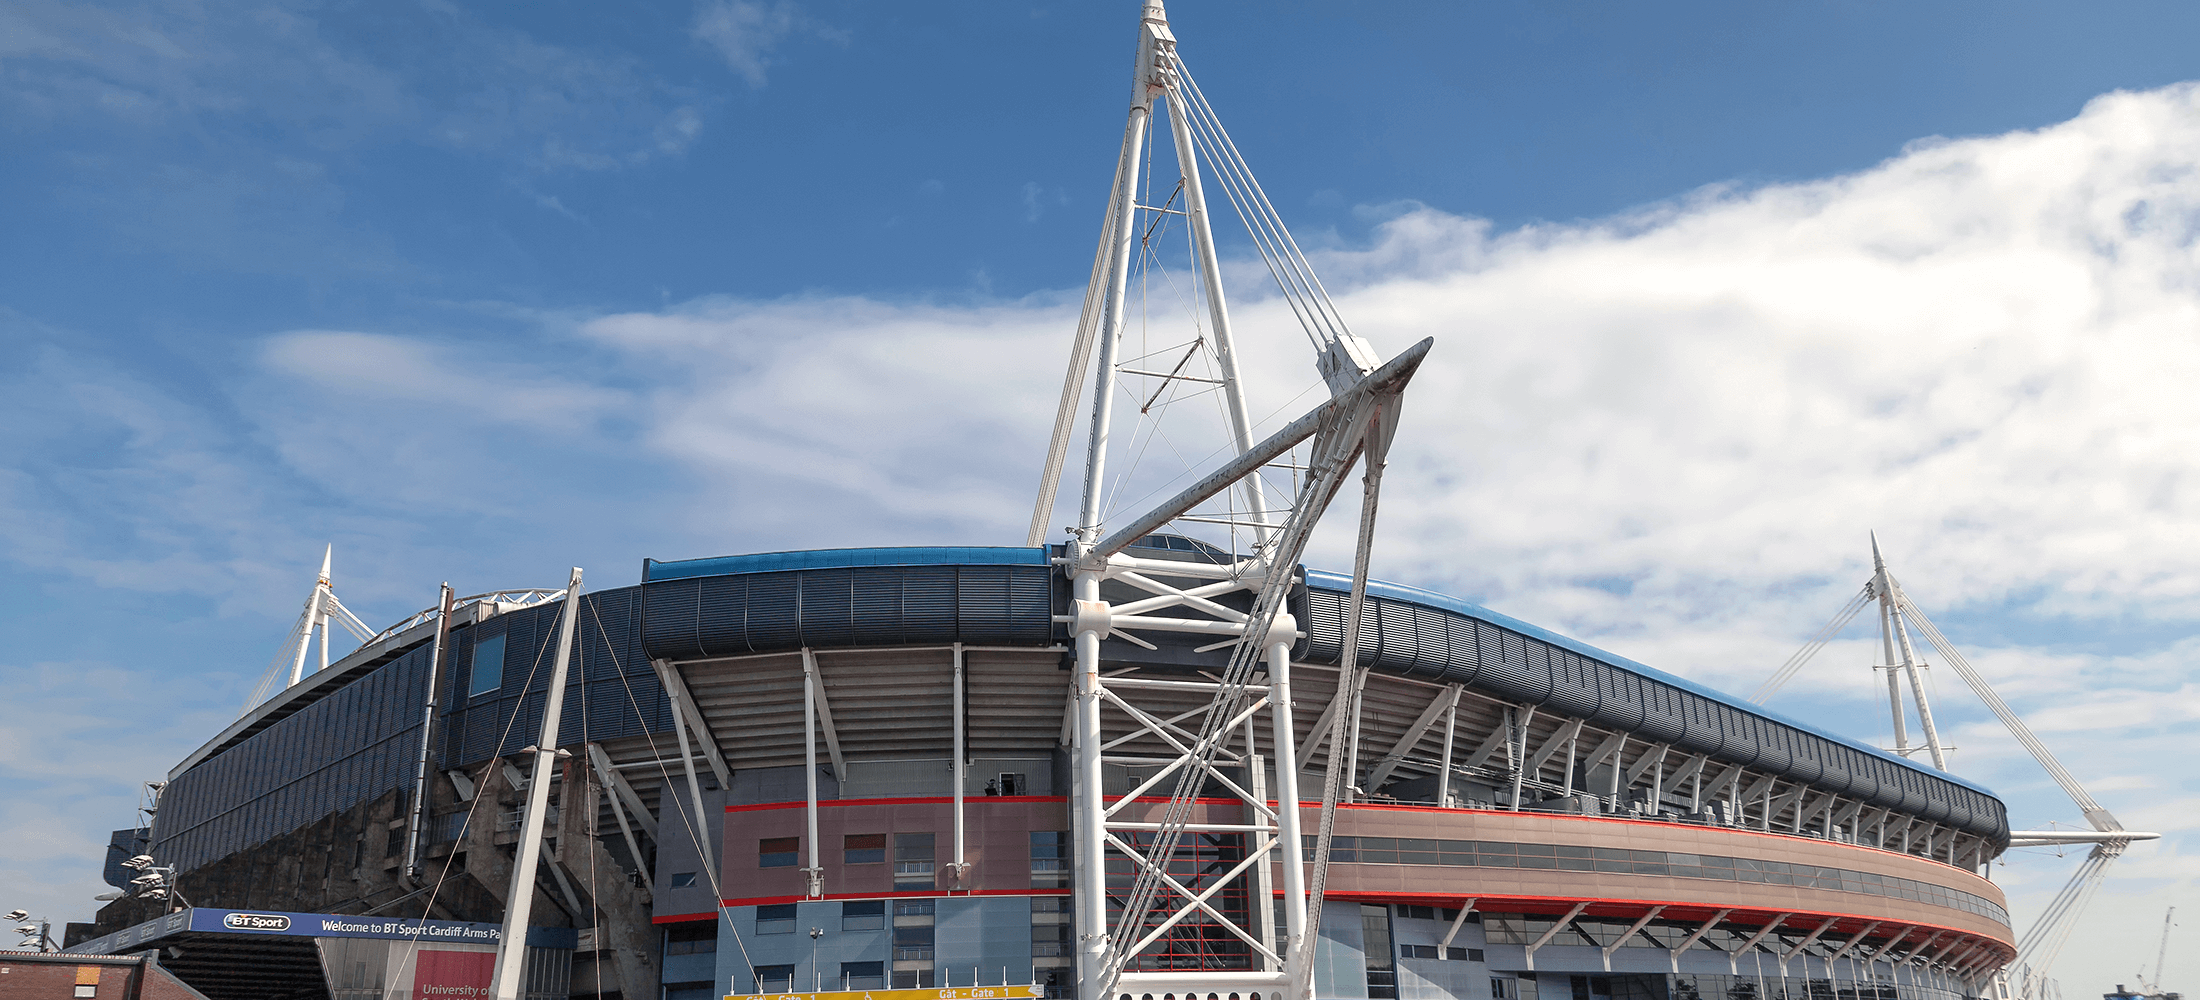 How the Principality Stadium puts Cardiff on the world stage